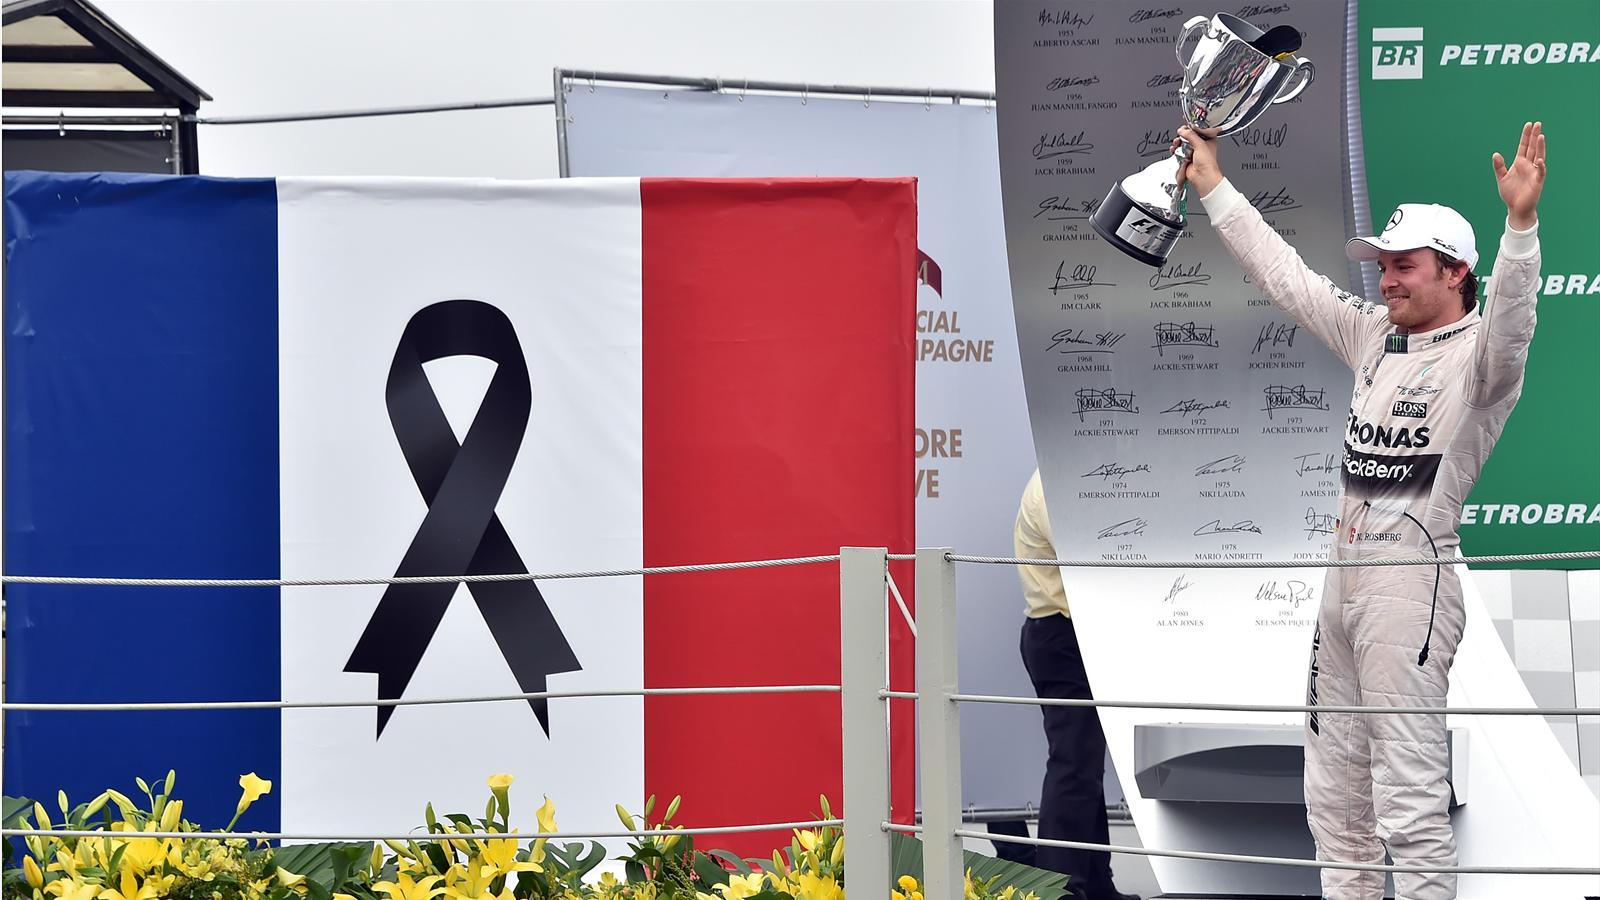 Mercedes' Formula One German driver Nico Rosberg celebrates after winning the Brazilian Grand Prix, beside a French flag with a black ribbon to remember those people killed during the Paris November 13 attacks, at the Interlagos racetrack in Sao Paulo, on